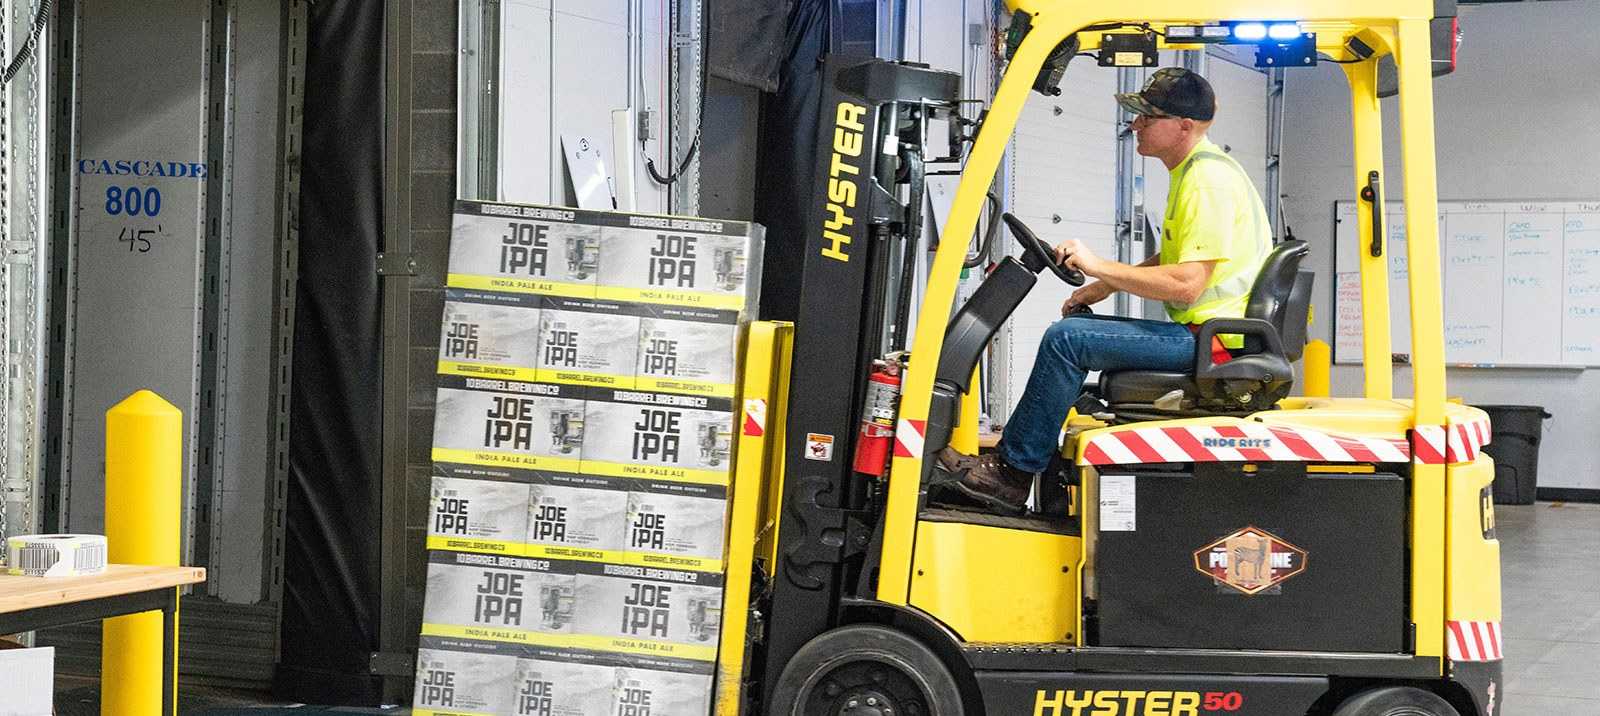 How Much Does a Forklift Cost?